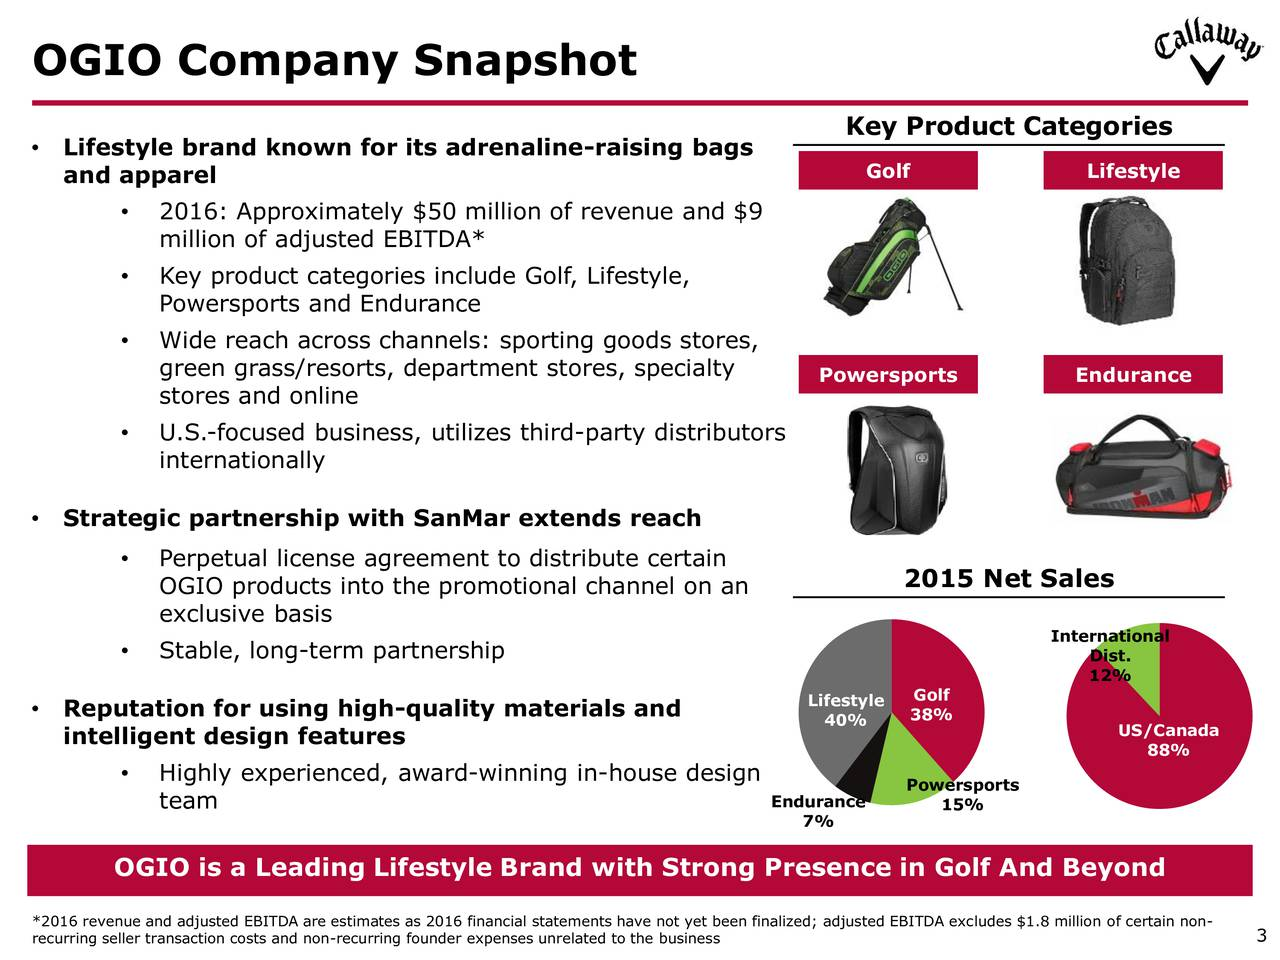 Key Product Categories Lifestyle brand known for its adrenaline-raising bags and apparel Golf Lifestyle 2016: Approximately $50 million of revenue and $9 million of adjusted EBITDA* Key product categories include Golf, Lifestyle, Powersports and Endurance Wide reach across channels: sporting goods stores, green grass/resorts, department stores, specialty Powersports Endurance stores and online U.S.-focused business, utilizes third-party distributors internationally Strategic partnership with SanMar extends reach Perpetual license agreement to distribute certain OGIO products into the promotional channel on an 2015 Net Sales exclusive basis International Stable, long-term partnership Dist. 12% Golf Reputation for using high-quality materials and Lifestyle38% intelligent design features 40% US/Canada 88% Highly experienced, award-winning in-house design Powersports team End7%ance 15% OGIO is a Leading Lifestyle Brand with Strong Presence in Golf And Beyond *2016 revenue and adjusted EBITDA are estimates as 2016 financial statements have not yet been finalized; adjusted EBITDA excludes $1.8 million of certain non- recurring seller transaction costs and non-recurring founder expenses unrelated to the business 3